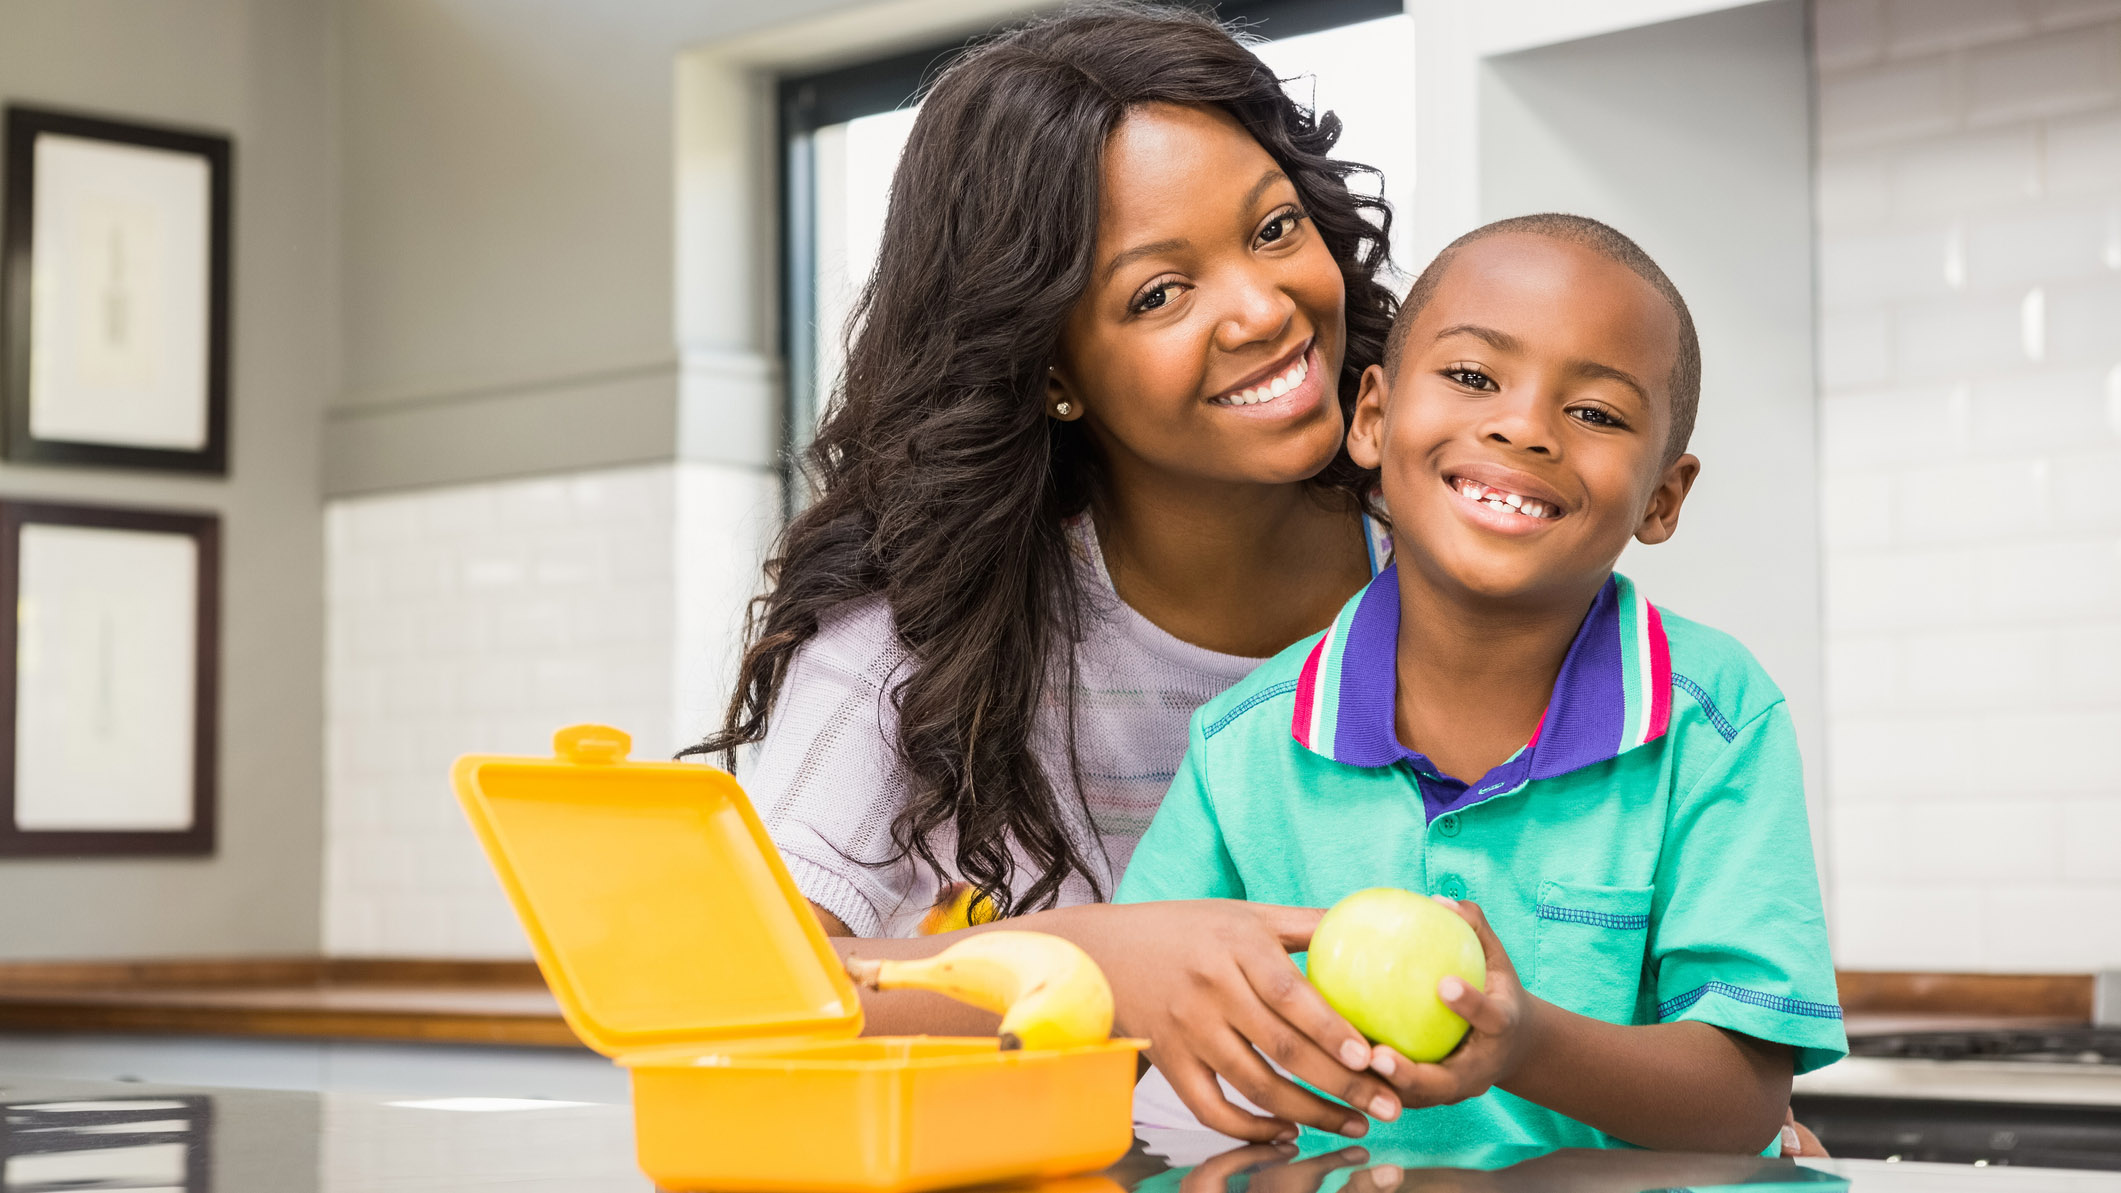 Smiling mnother and her young son at the kitchen counter with a yellow lunchbox and apple in front of them